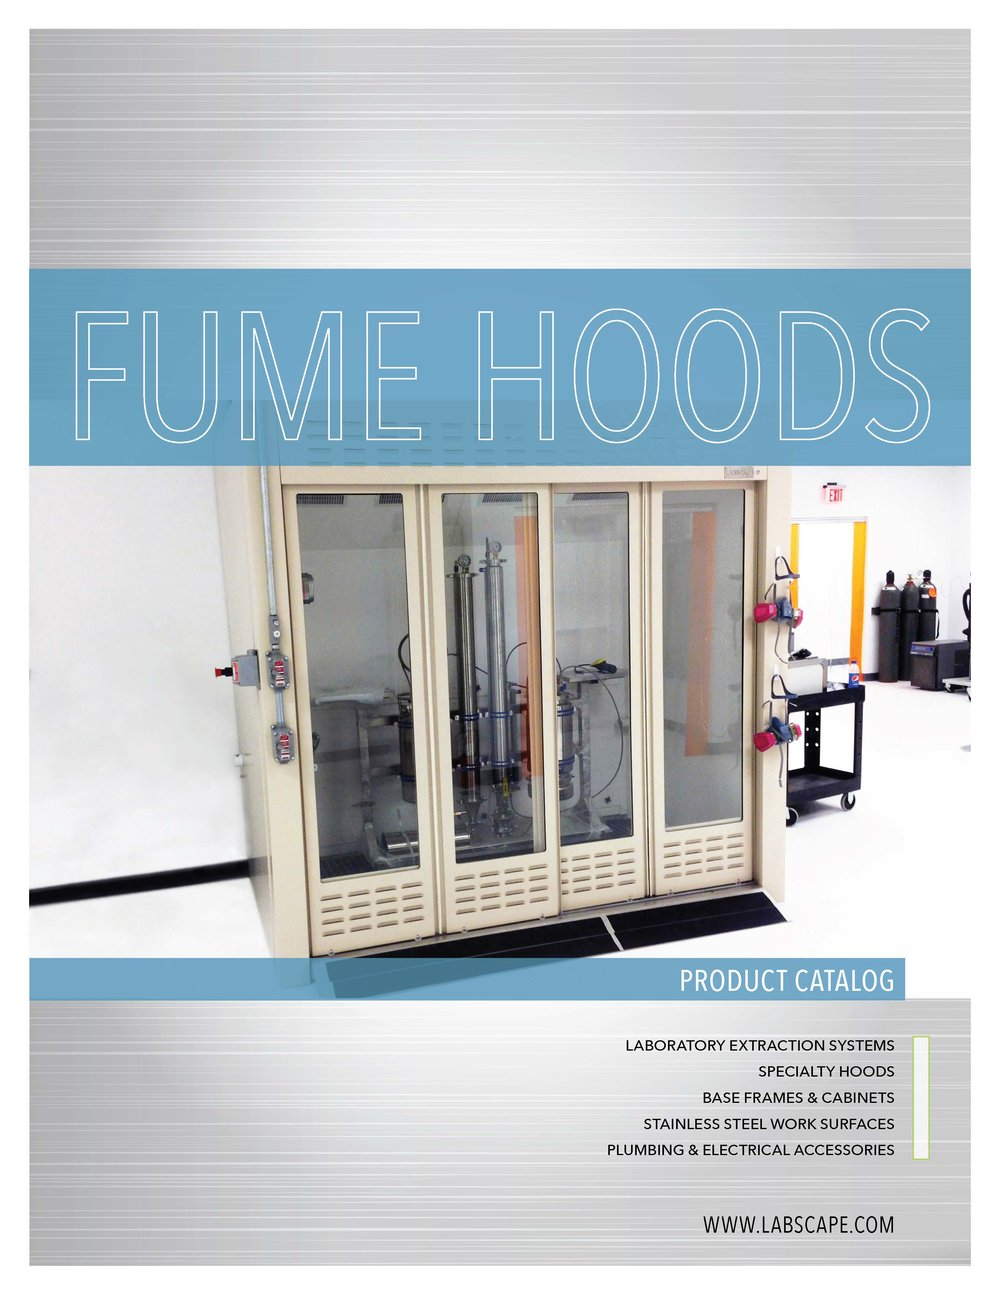 Labscape Fume Hood Catalog_Page_01.jpg